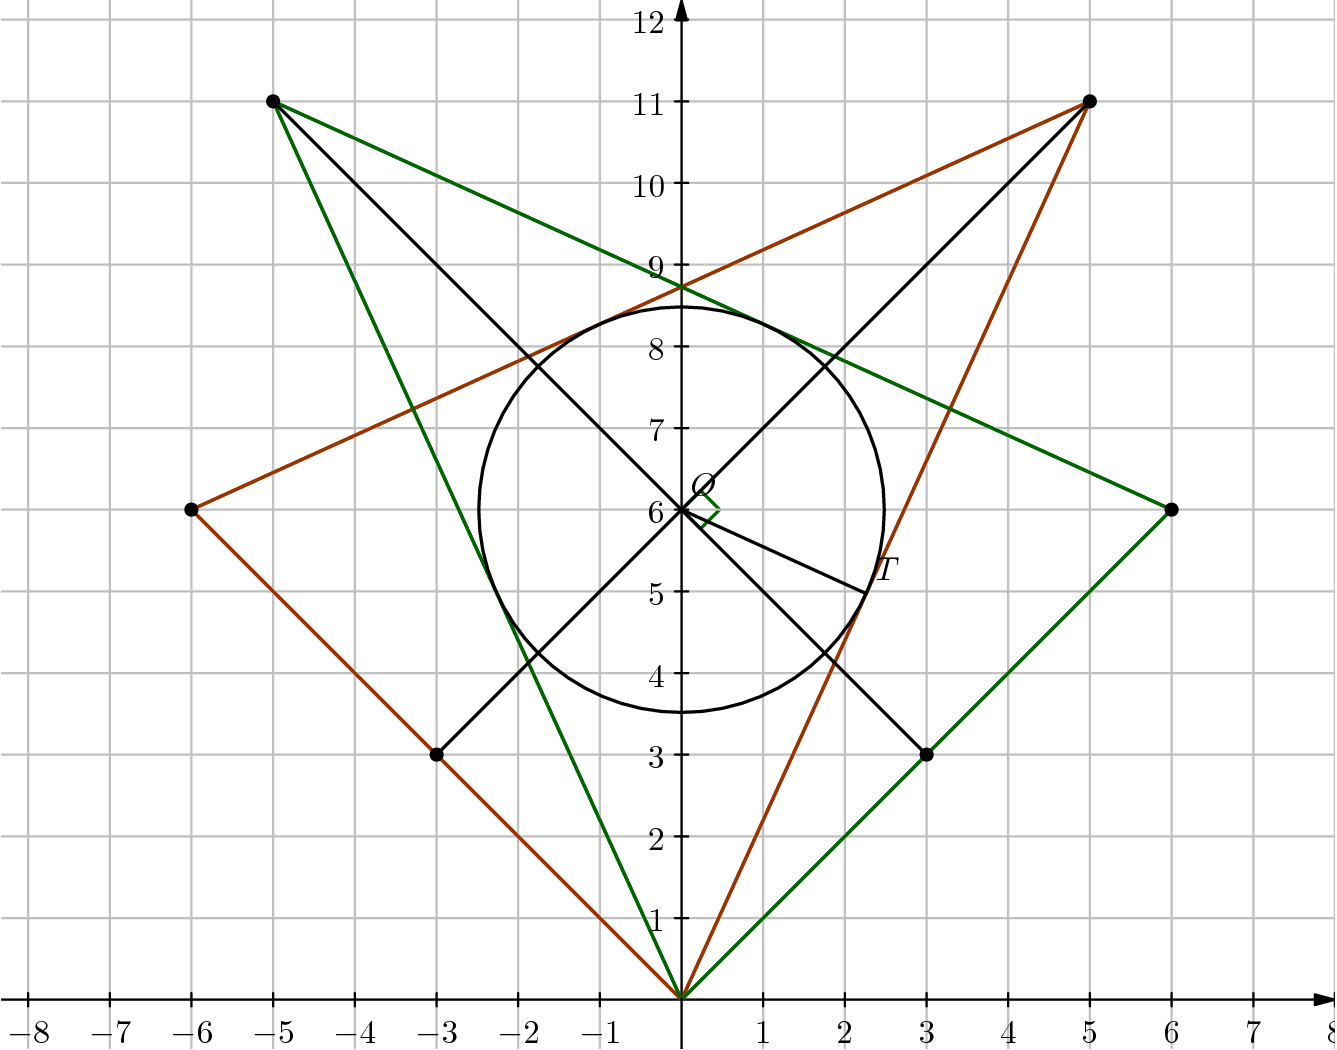 "[asy]  /* Geogebra to Asymptote conversion by samrocksnature, documentation at artofproblemsolving.com/Wiki go to User:Azjps/geogebra */ real labelscalefactor = 0.5; /* changes label-to-point distance */ pen dps = linewidth(0.7) + fontsize(10); defaultpen(dps); /* default pen style */  pen dotstyle = black; /* point style */  real xmin = -8.325025958411356, xmax = 8, ymin = -0.6033105644019334, ymax = 12.237120576121757;  /* image dimensions */ pen zzttqq = rgb(0.6,0.2,0); pen qqwuqq = rgb(0,0.39215686274509803,0); pen cqcqcq = rgb(0.7529411764705882,0.7529411764705882,0.7529411764705882);   draw((5,11)--(0,0)--(-6,6)--cycle, linewidth(1) + zzttqq);  draw((6,6)--(-5,11)--(0,0)--cycle, linewidth(1) + qqwuqq);  draw((0.2328977836854361,5.767102216314564)--(0.4657955673708722,6)--(0.2328977836854361,6.232897783685436)--(0,6)--cycle, linewidth(1) + qqwuqq);   /* draw grid of horizontal/vertical lines */ pen gridstyle = linewidth(0.7) + cqcqcq; real gridx = 1, gridy = 1; /* grid intervals */ for(real i = ceil(xmin/gridx)*gridx; i <= floor(xmax/gridx)*gridx; i += gridx)  draw((i,ymin)--(i,ymax), gridstyle); for(real i = ceil(ymin/gridy)*gridy; i <= floor(ymax/gridy)*gridy; i += gridy)  draw((xmin,i)--(xmax,i), gridstyle);  /* end grid */   Label laxis; laxis.p = fontsize(10);  xaxis(xmin, xmax, Ticks(laxis, Step = 1, Size = 2, NoZero),EndArrow(6), above = true);  yaxis(ymin, ymax, Ticks(laxis, Step = 1, Size = 2, NoZero),EndArrow(6), above = true); /* draws axes; NoZero hides '0' label */   /* draw figures */ draw((5,11)--(0,0), linewidth(1) + zzttqq);  draw((0,0)--(-6,6), linewidth(1) + zzttqq);  draw((-6,6)--(5,11), linewidth(1) + zzttqq);  draw((6,6)--(-5,11), linewidth(1) + qqwuqq);  draw((-5,11)--(0,0), linewidth(1) + qqwuqq);  draw((0,0)--(6,6), linewidth(1) + qqwuqq);  draw((-3,3)--(5,11), linewidth(1));  draw((-5,11)--(3,3), linewidth(1));  draw(circle((0,6), 2.482817665807104), linewidth(1));  draw((0,6)--(2.2602739726027394,4.972602739726027), linewidth(1));   /* dots and labels */ dot((0,0),linewidth(1pt) + dotstyle);  dot((3,3),dotstyle);  dot((-3,3),dotstyle);  dot((6,6),dotstyle);  dot((-6,6),dotstyle);  dot((5,11),dotstyle);  dot((-5,11),dotstyle);  dot((0,6),linewidth(1pt) + dotstyle);  label(""$O$"", (0.059294254264342997,6.119672124650978), NE * labelscalefactor);  dot((2.2602739726027394,4.972602739726027),linewidth(1pt) + dotstyle);  label(""$T$"", (2.326166015469254,5.094921876435061), NE * labelscalefactor);  clip((xmin,ymin)--(xmin,ymax)--(xmax,ymax)--(xmax,ymin)--cycle);   /* end of picture */ [/asy]"